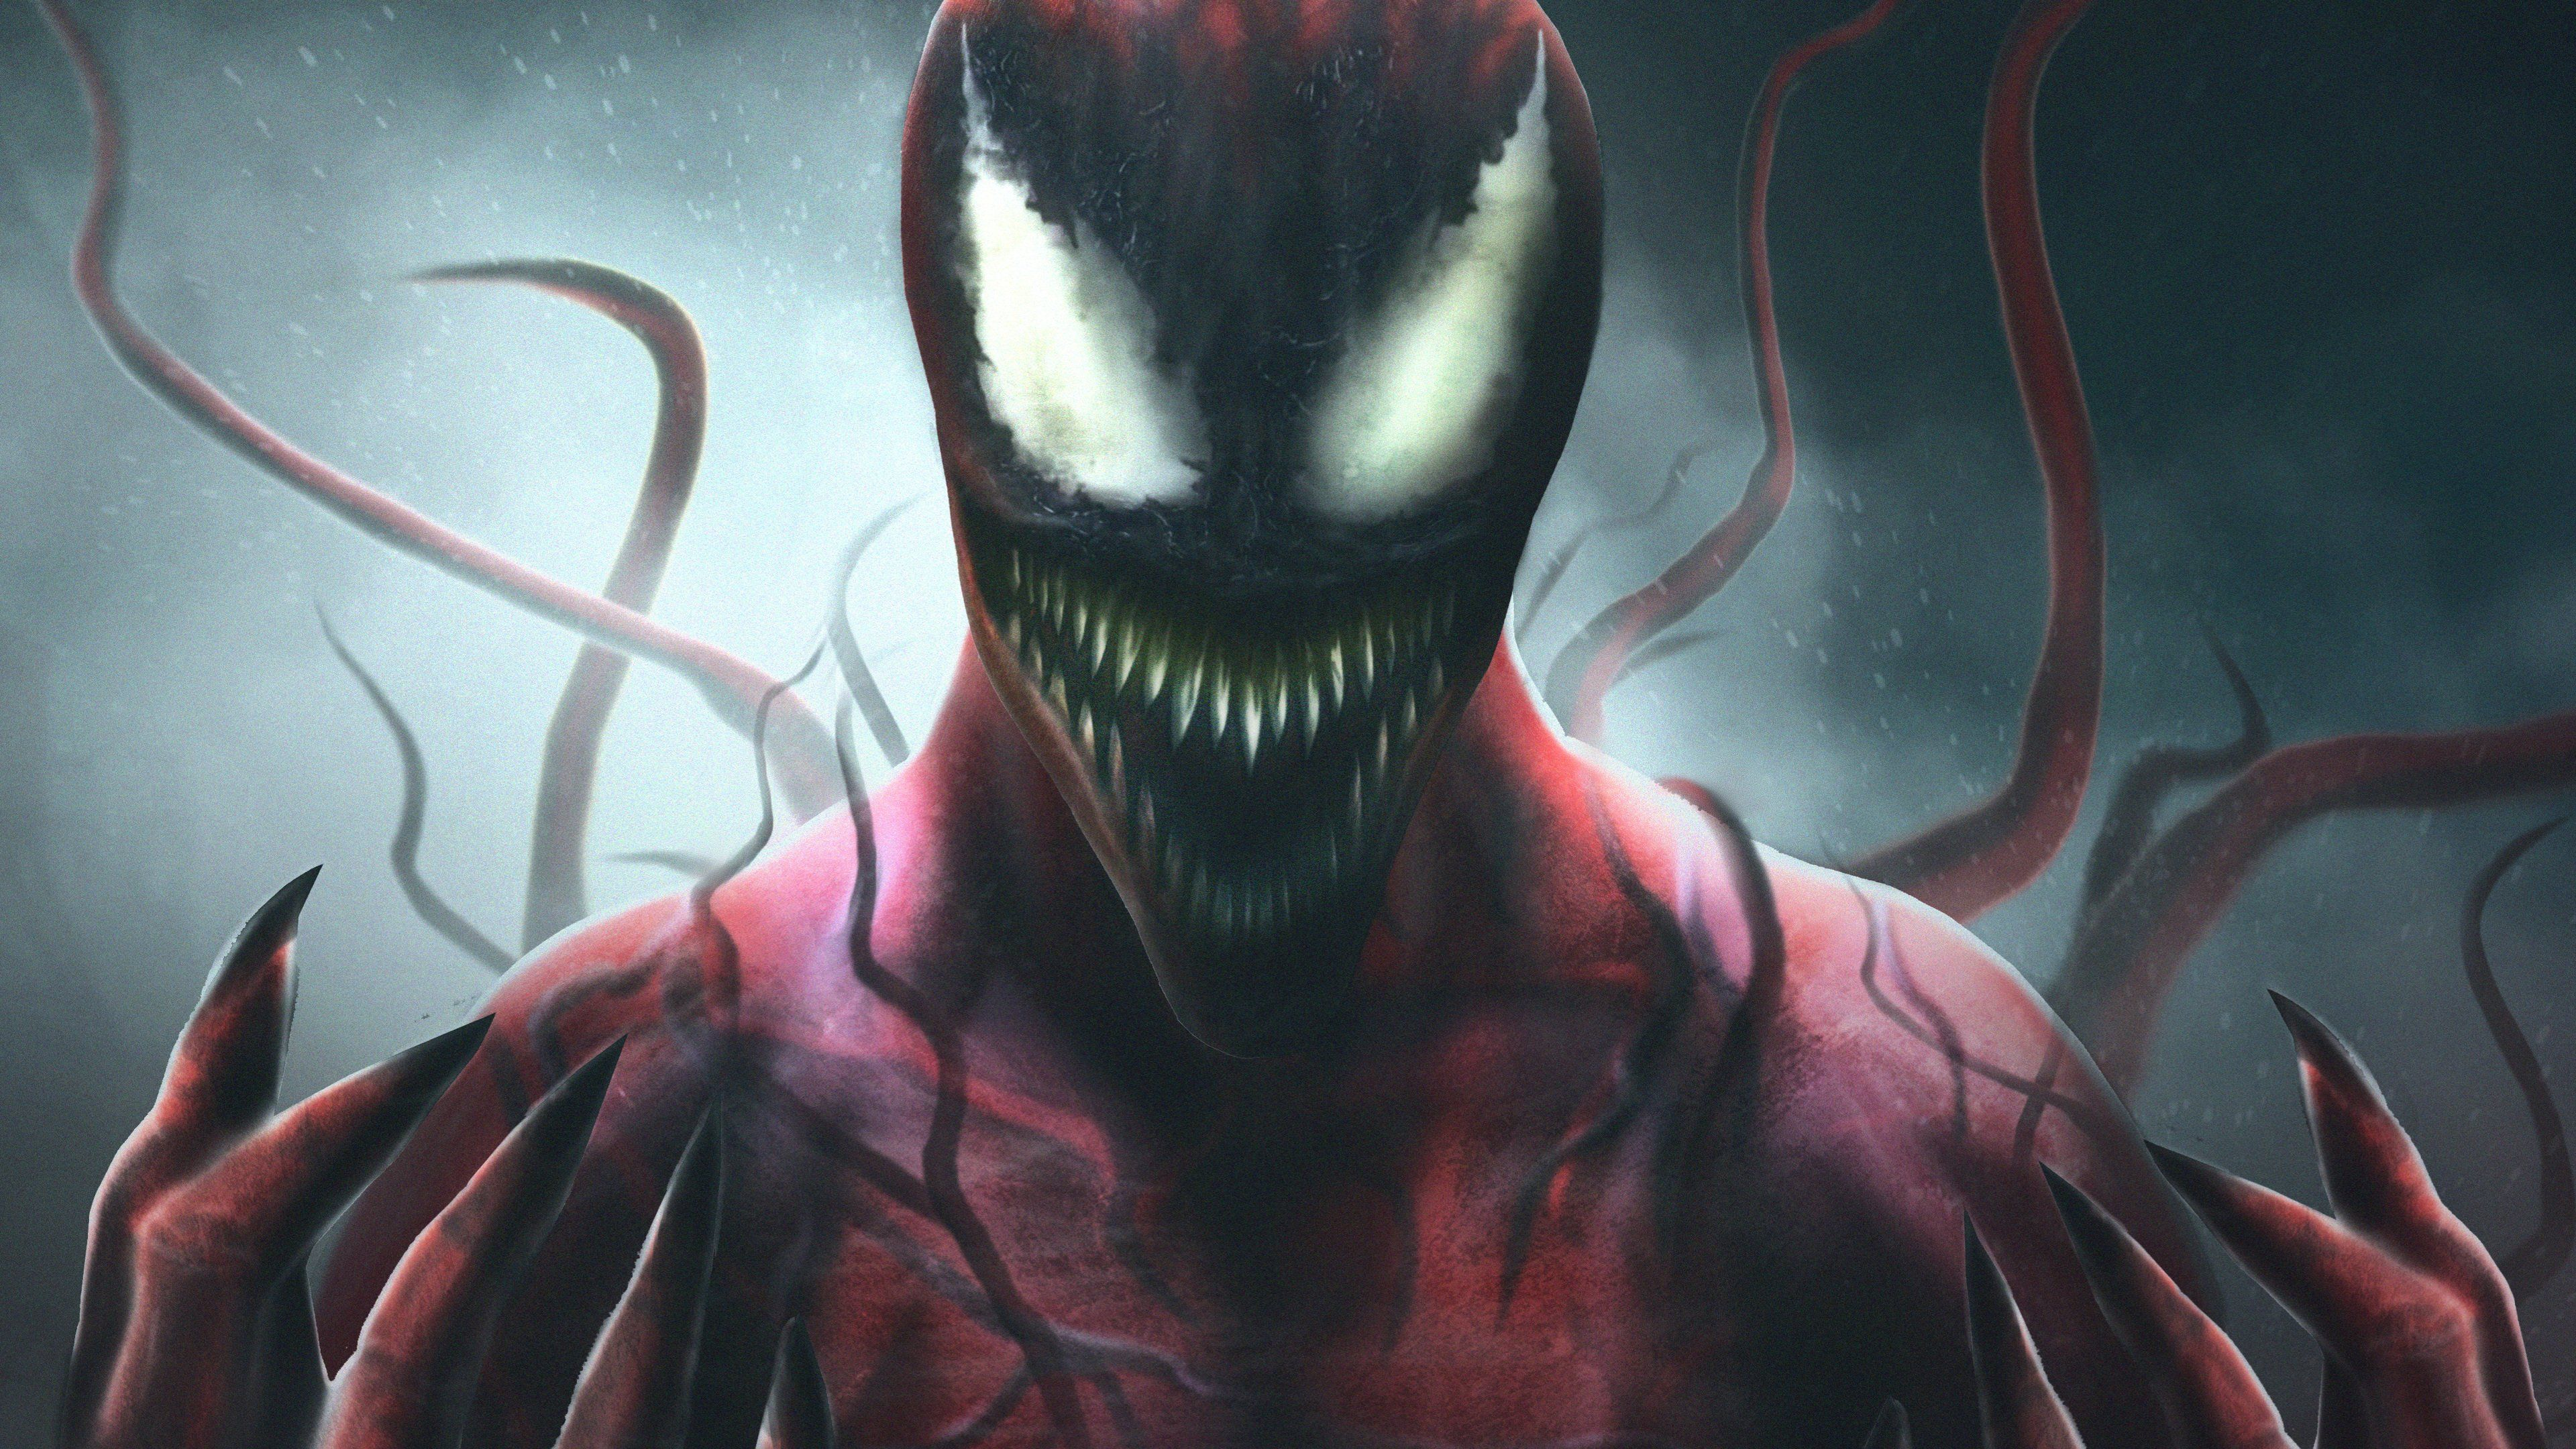 Carnage 4k Marvel Wallpapers Hd Wallpapers Deviantart Wallpapers Carnage Wallpapers Artwork Wallpapers A In 2020 Marvel Wallpaper Carnage Marvel Spiderman Artwork